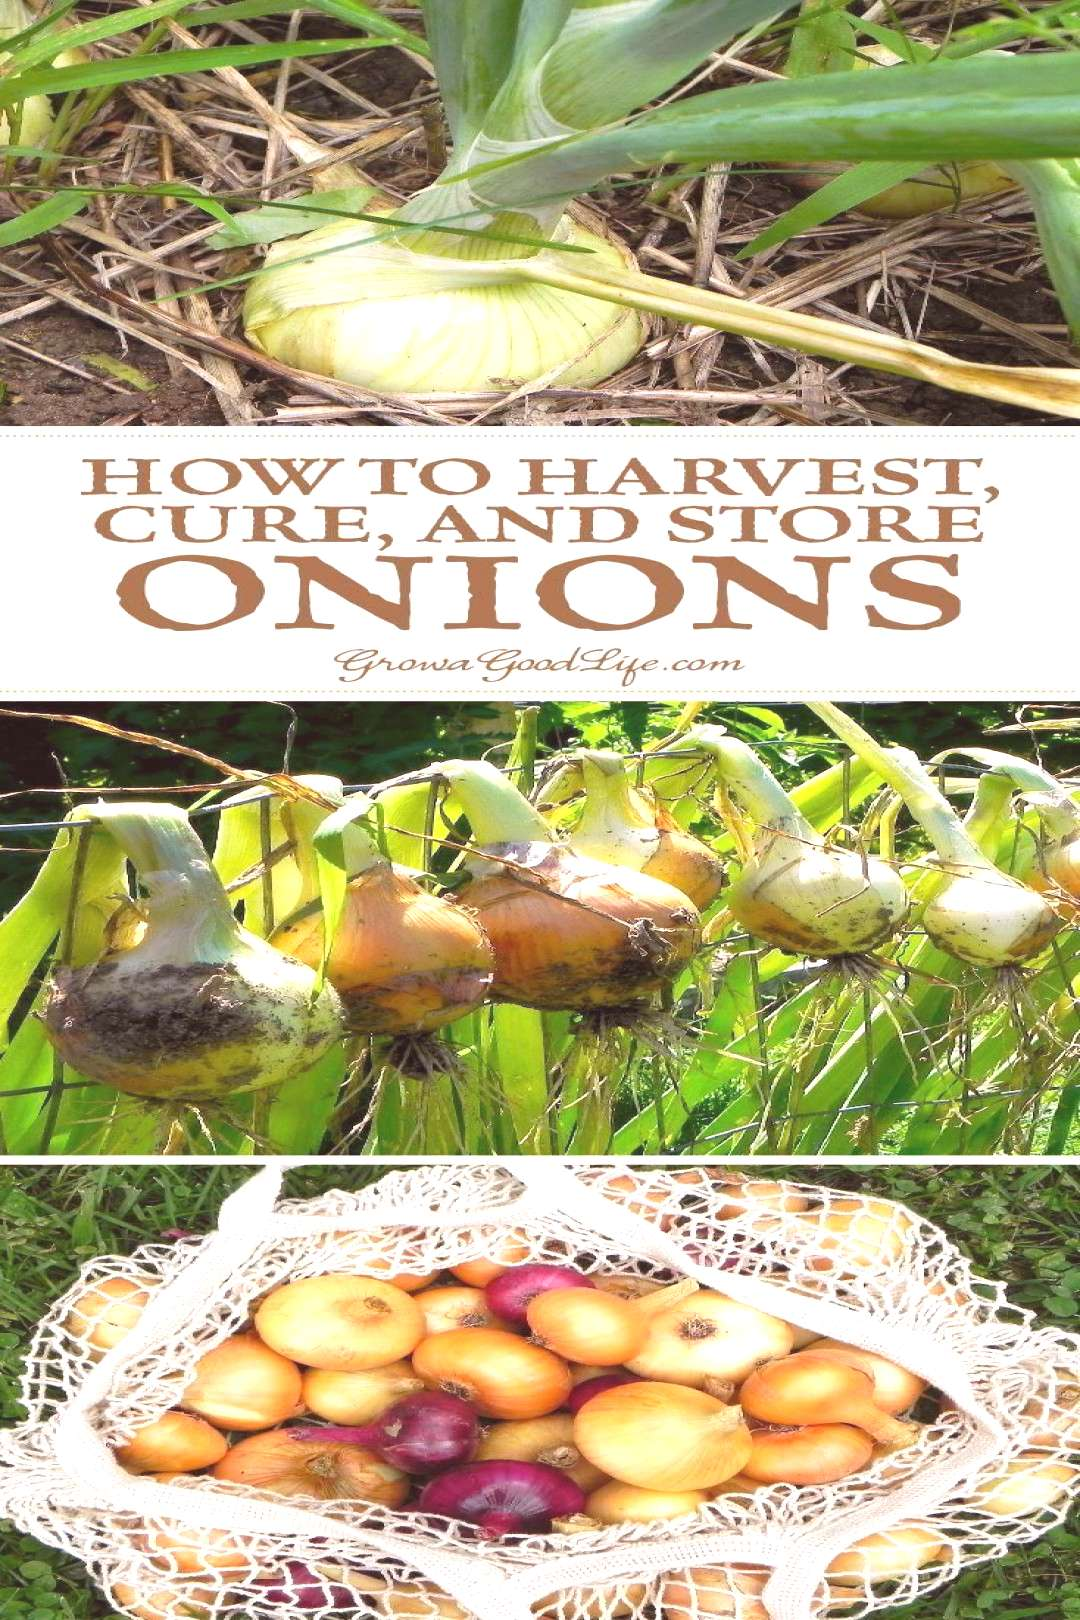 Learn when to harvest and how to cure storing onions to provide delicious flavor to winter